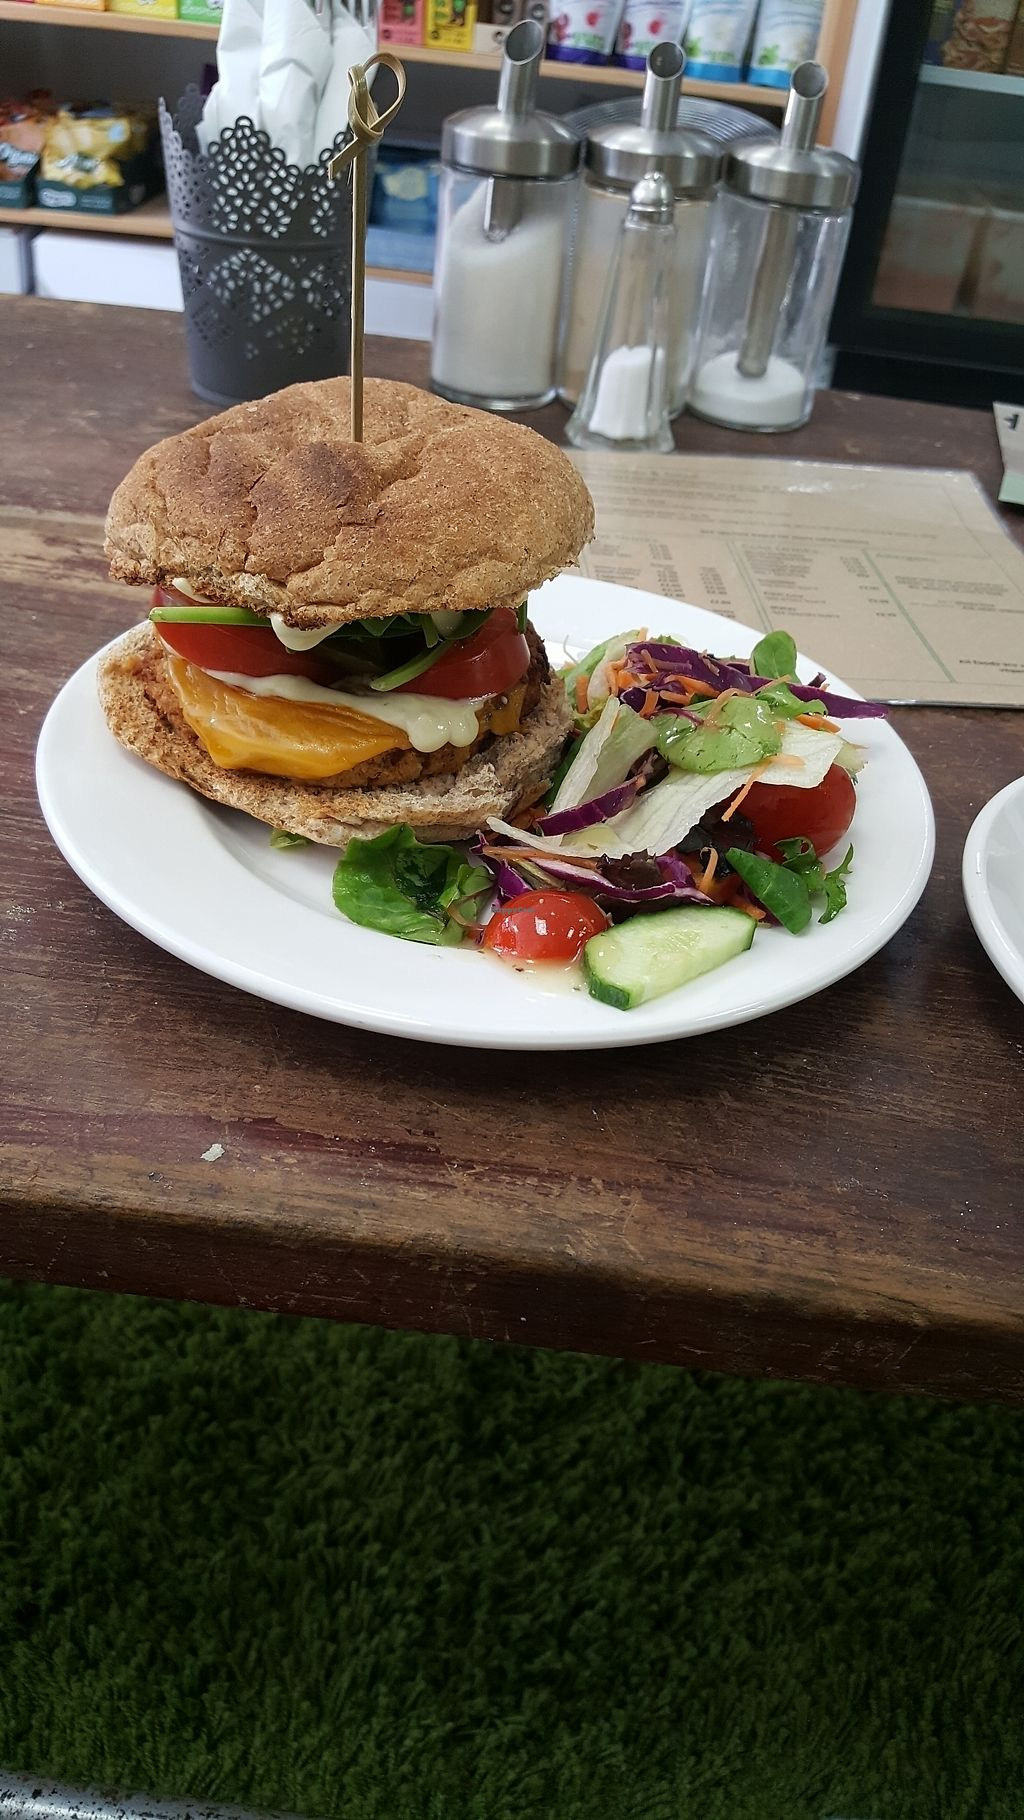 """Photo of CLOSED: PlantBased Exmouth  by <a href=""""/members/profile/PaganEliseHare"""">PaganEliseHare</a> <br/>My Gorgeous Lunch <br/> August 25, 2017  - <a href='/contact/abuse/image/69549/297005'>Report</a>"""